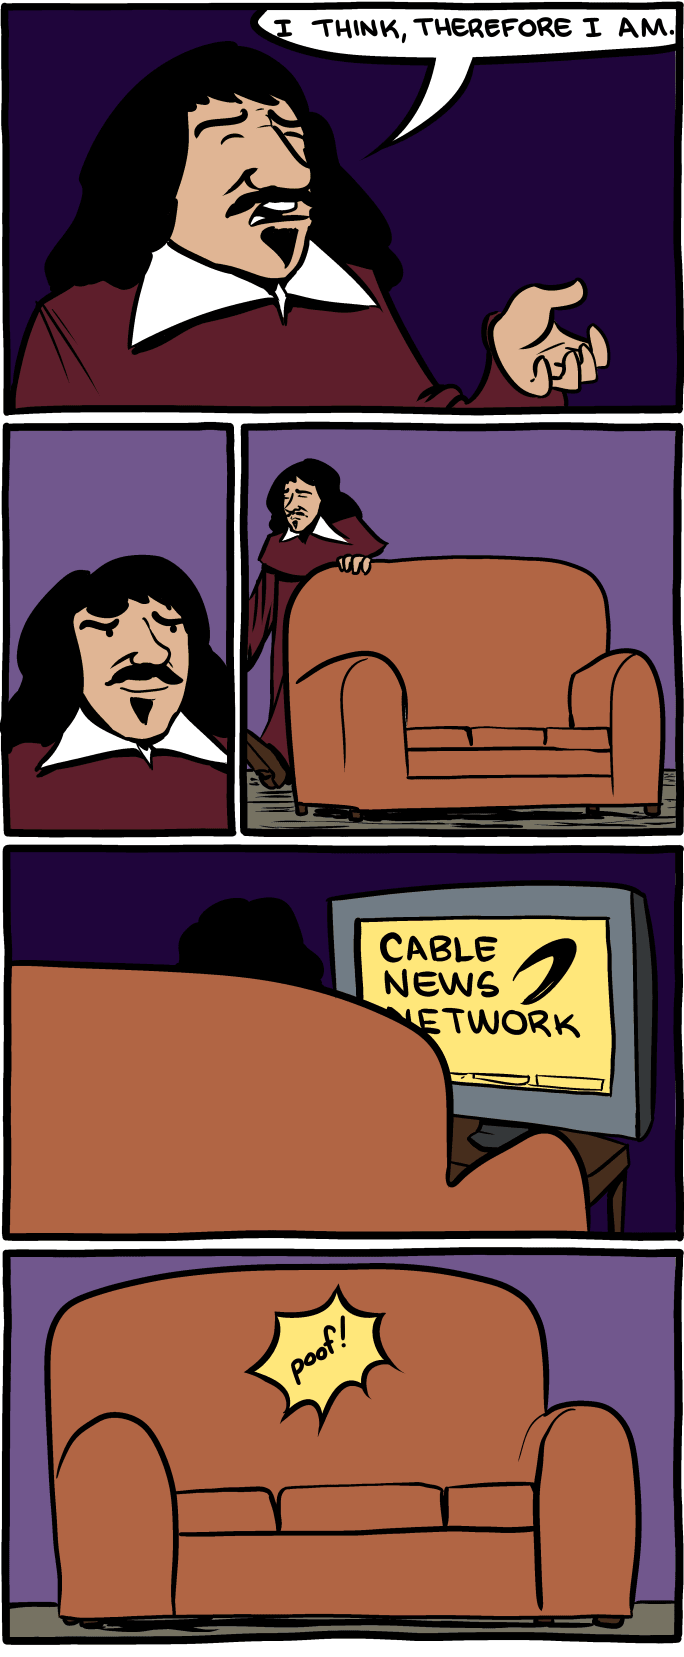 I think therefore I am on SMBC